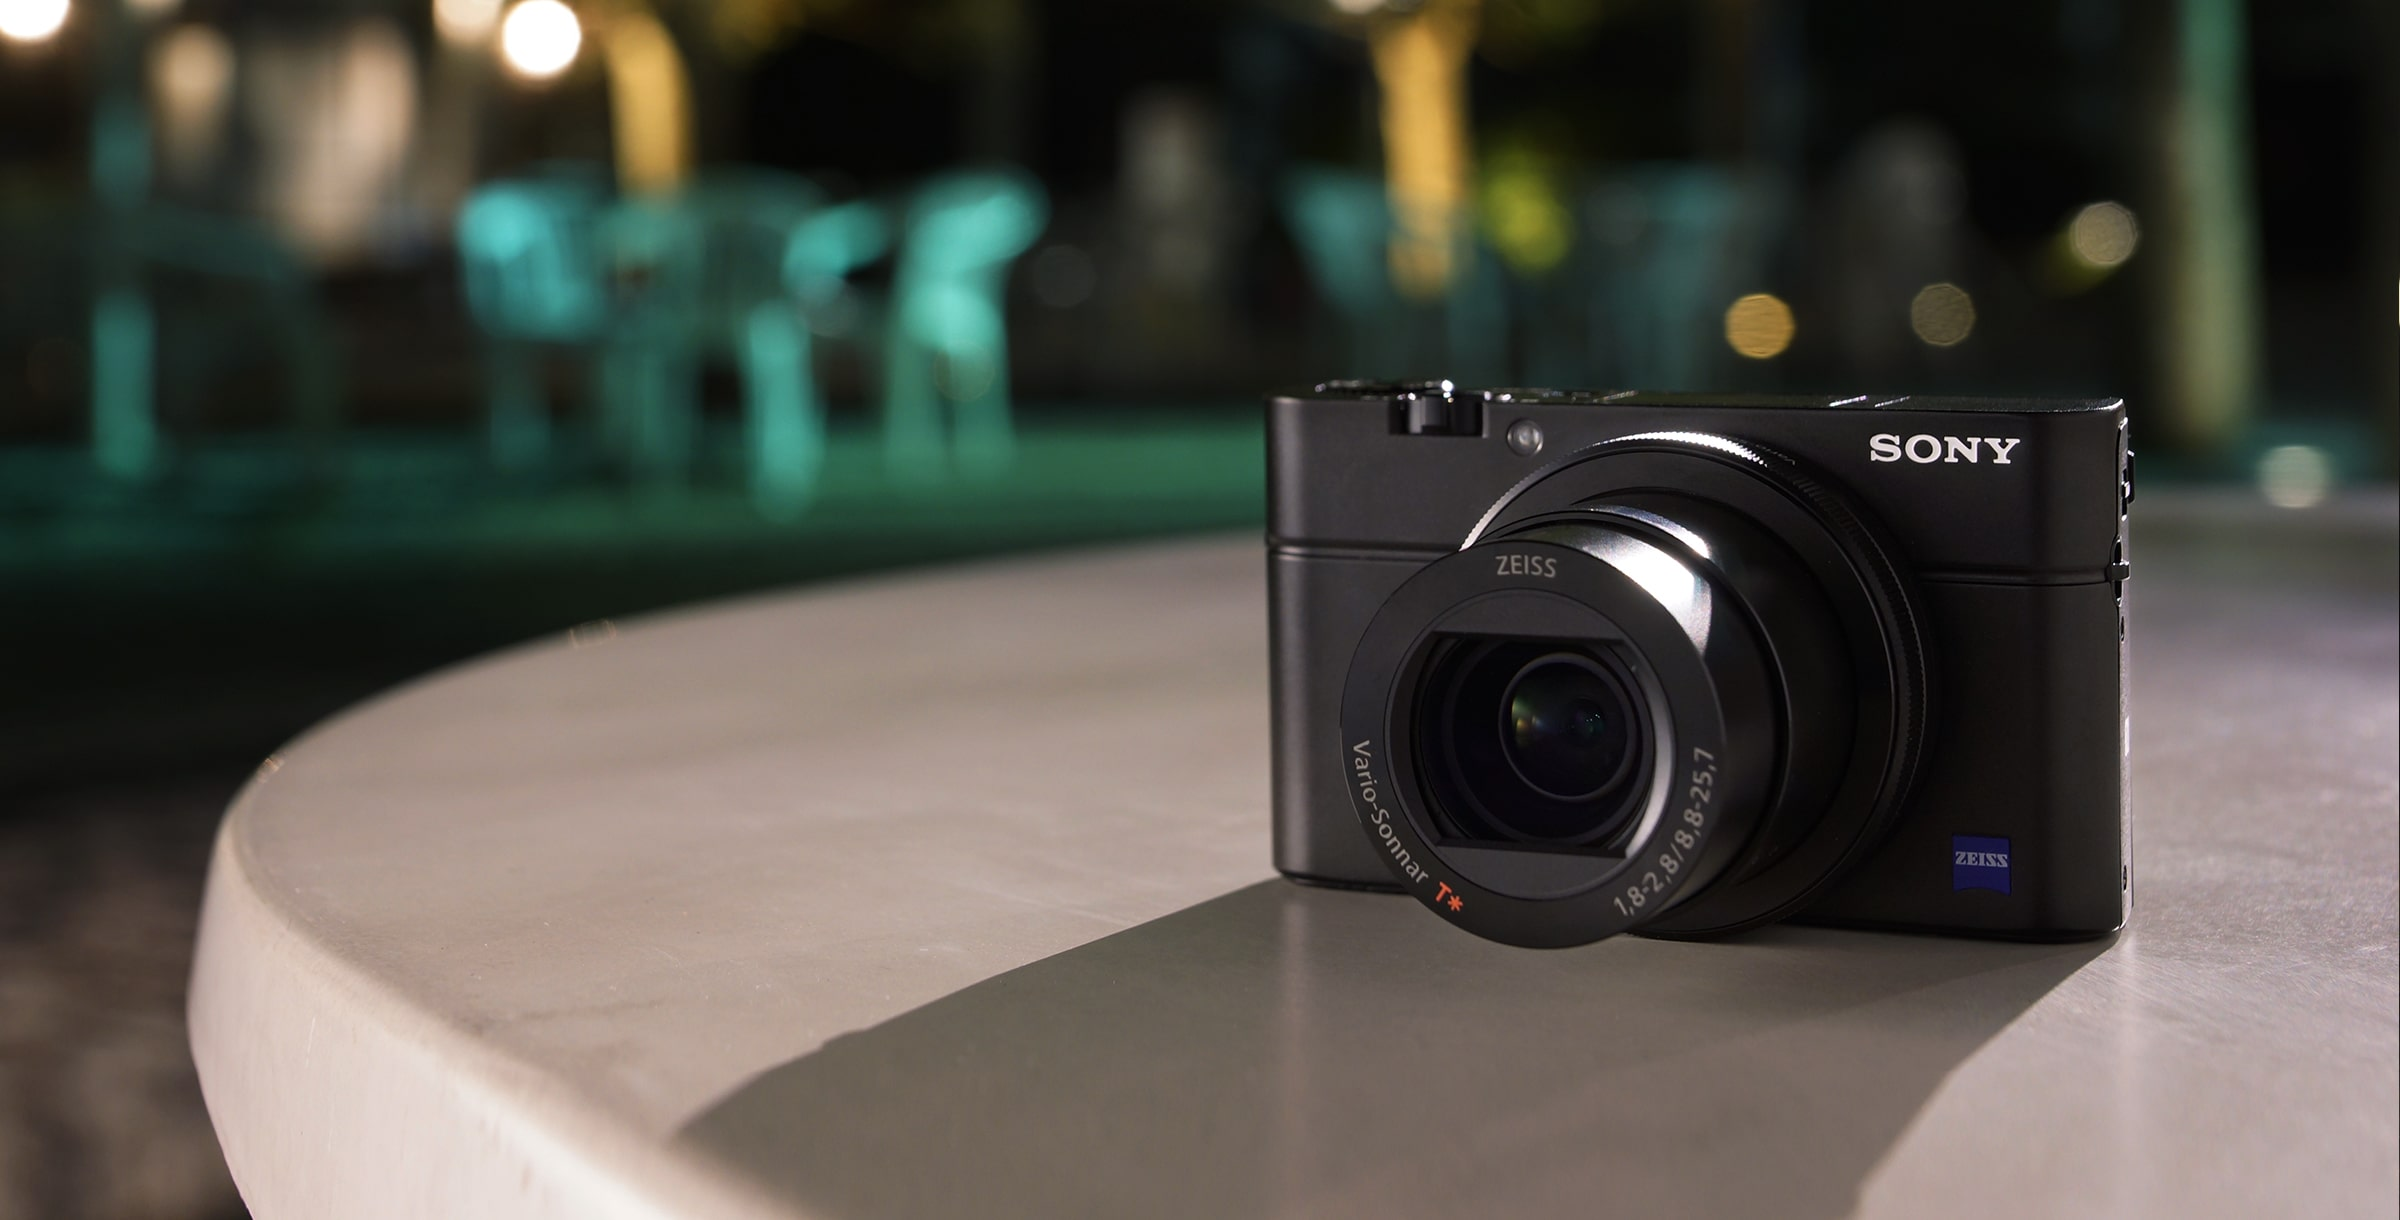 RX100 III Advanced Camera with 1.0 inch sensor in action